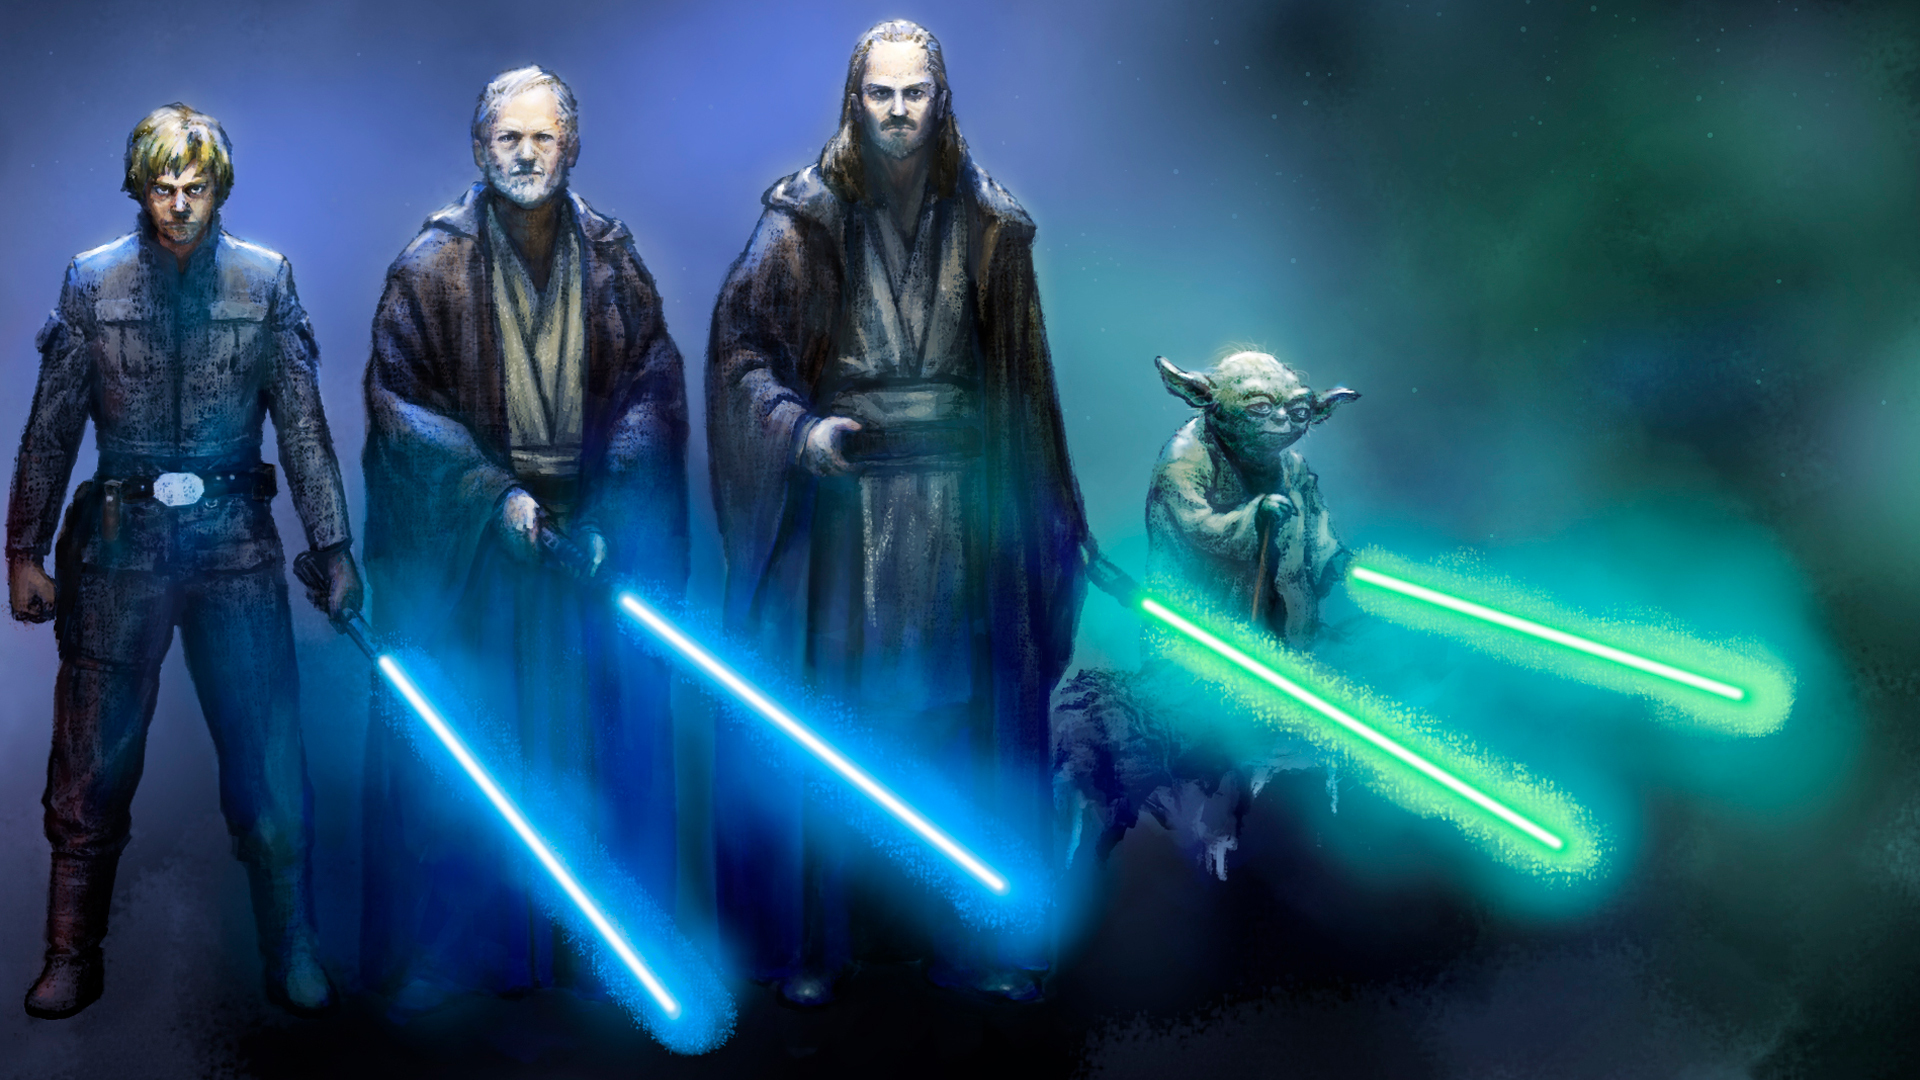 star wars wallpaper jedi from shadow of death hosted